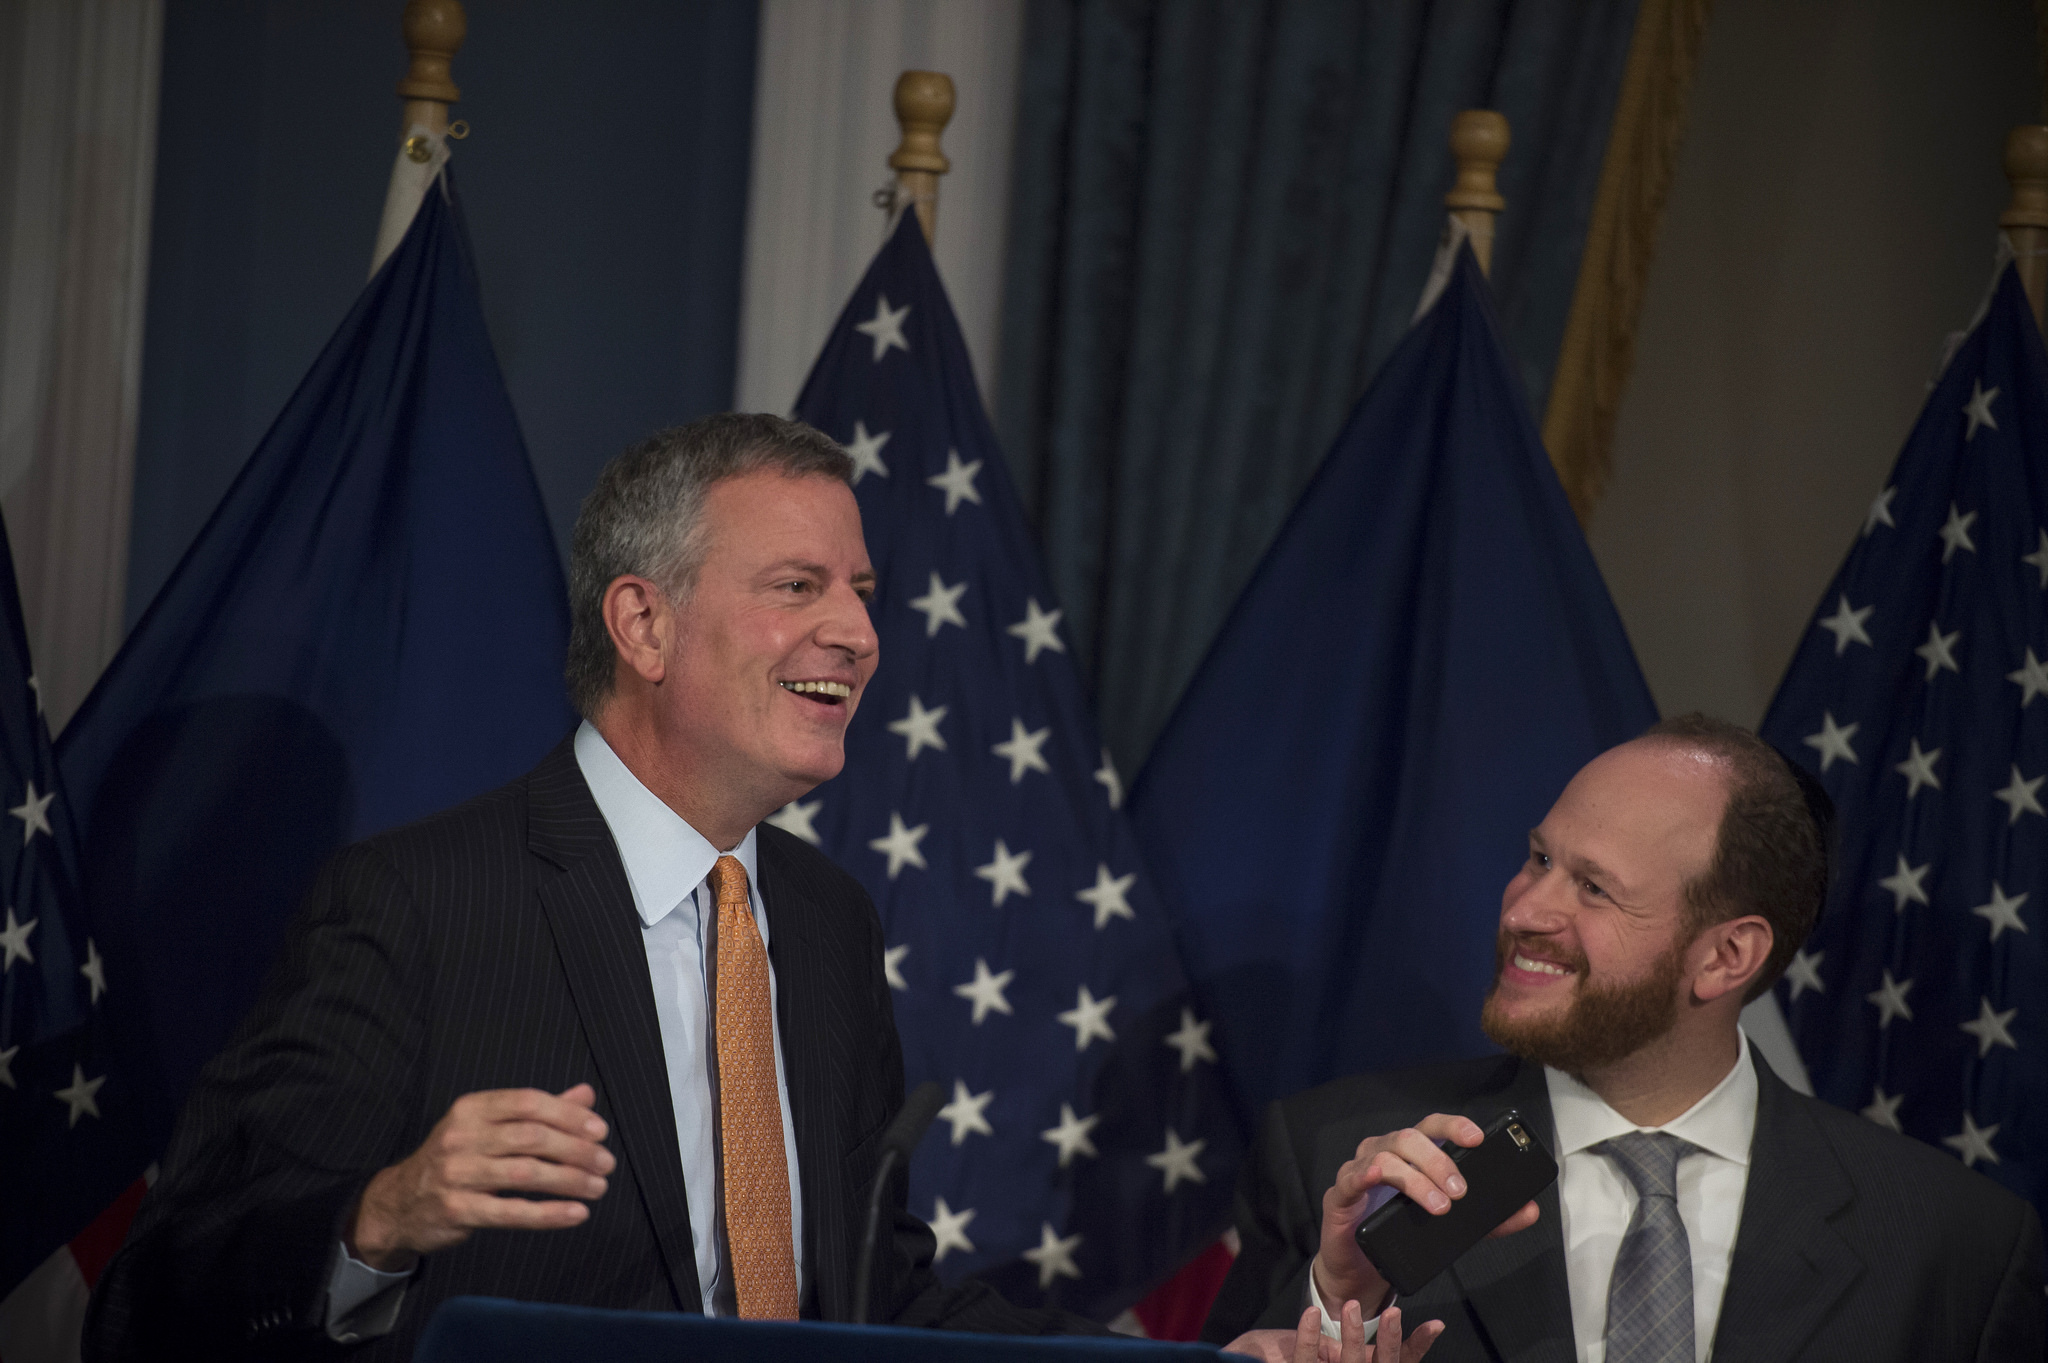 Mayor Bill de Blasio and City Council Member David Greenfield at the signing of Intro. 775-A. Credit: Ed Reed/Mayoral Photography Office